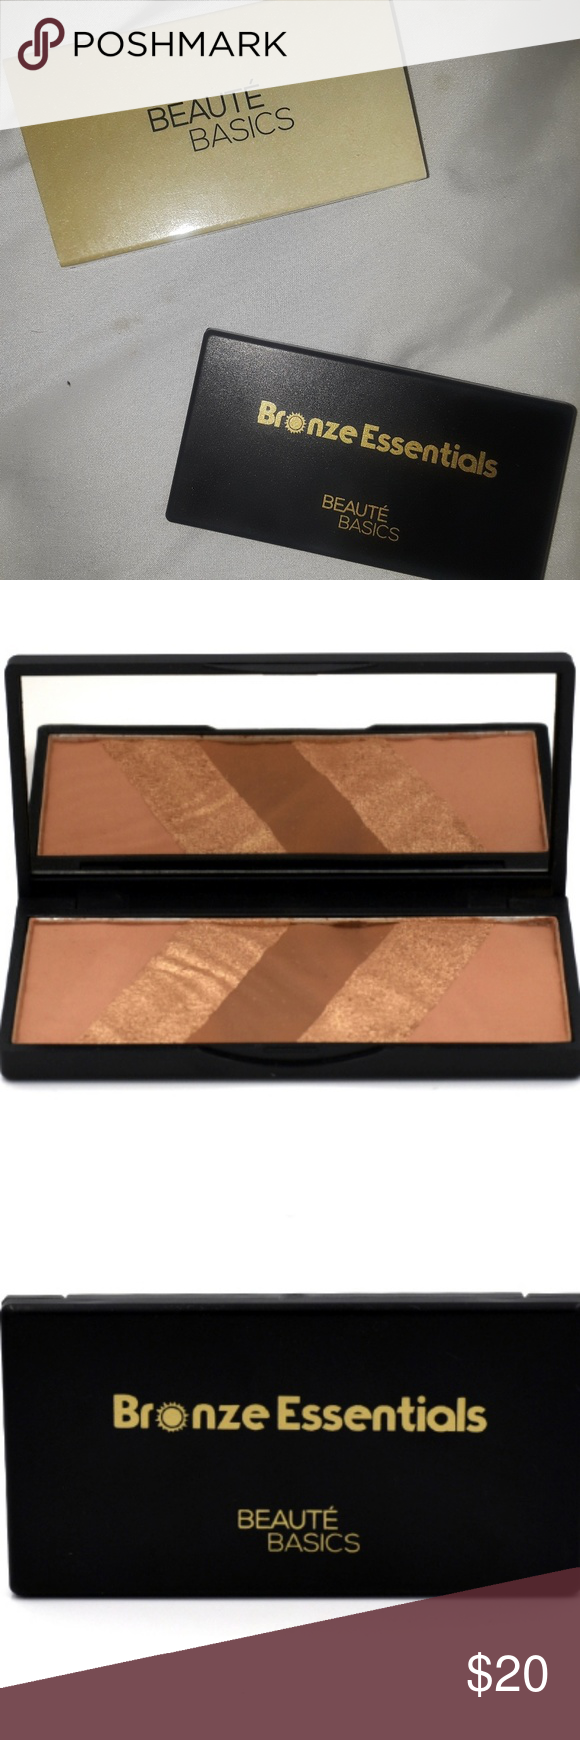 Beauté Basics Bronze Essentials Bronzer New In Box Beauté